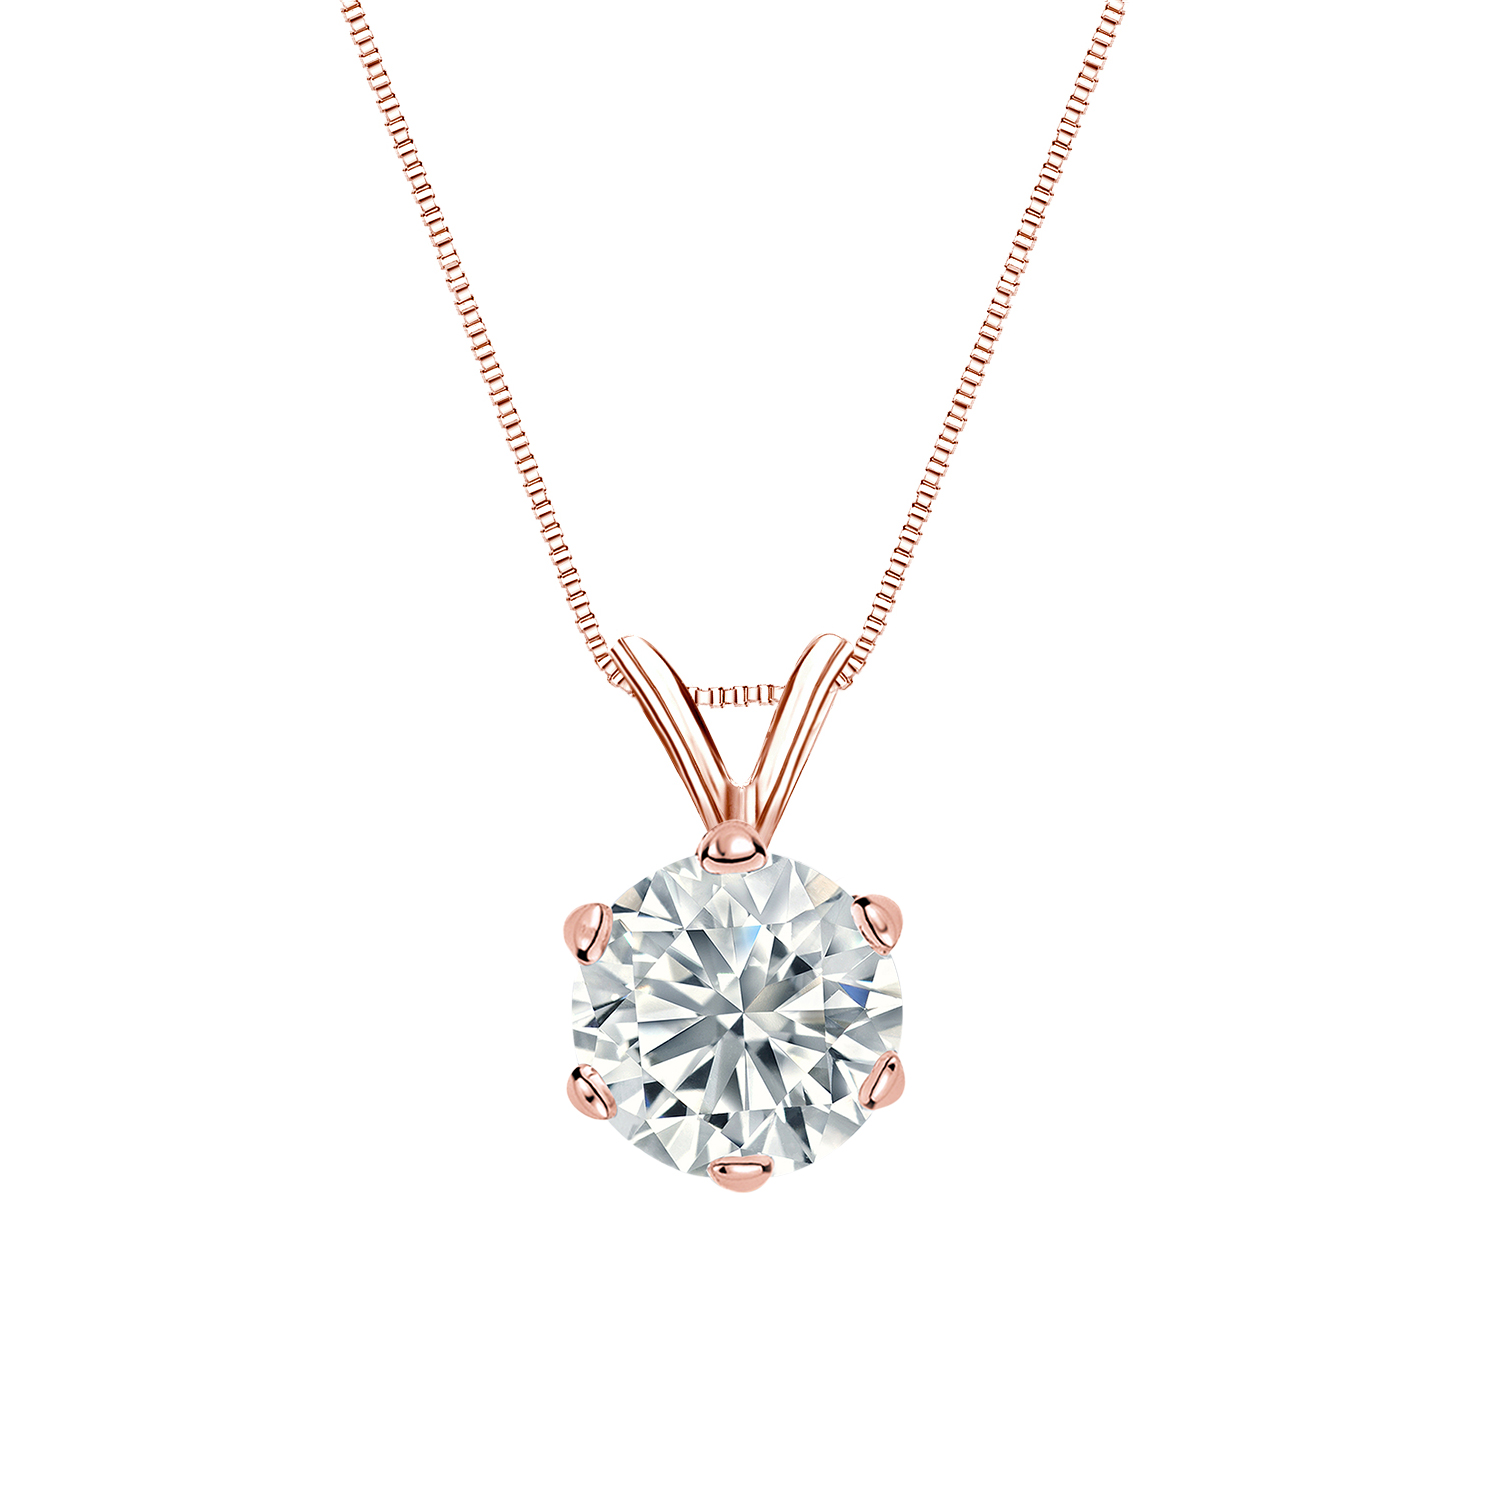 Certified 0.88 ct. tw. Round Diamond Solitaire Pendant in 14k Rose Gold 6-Prong (I-J, I1)